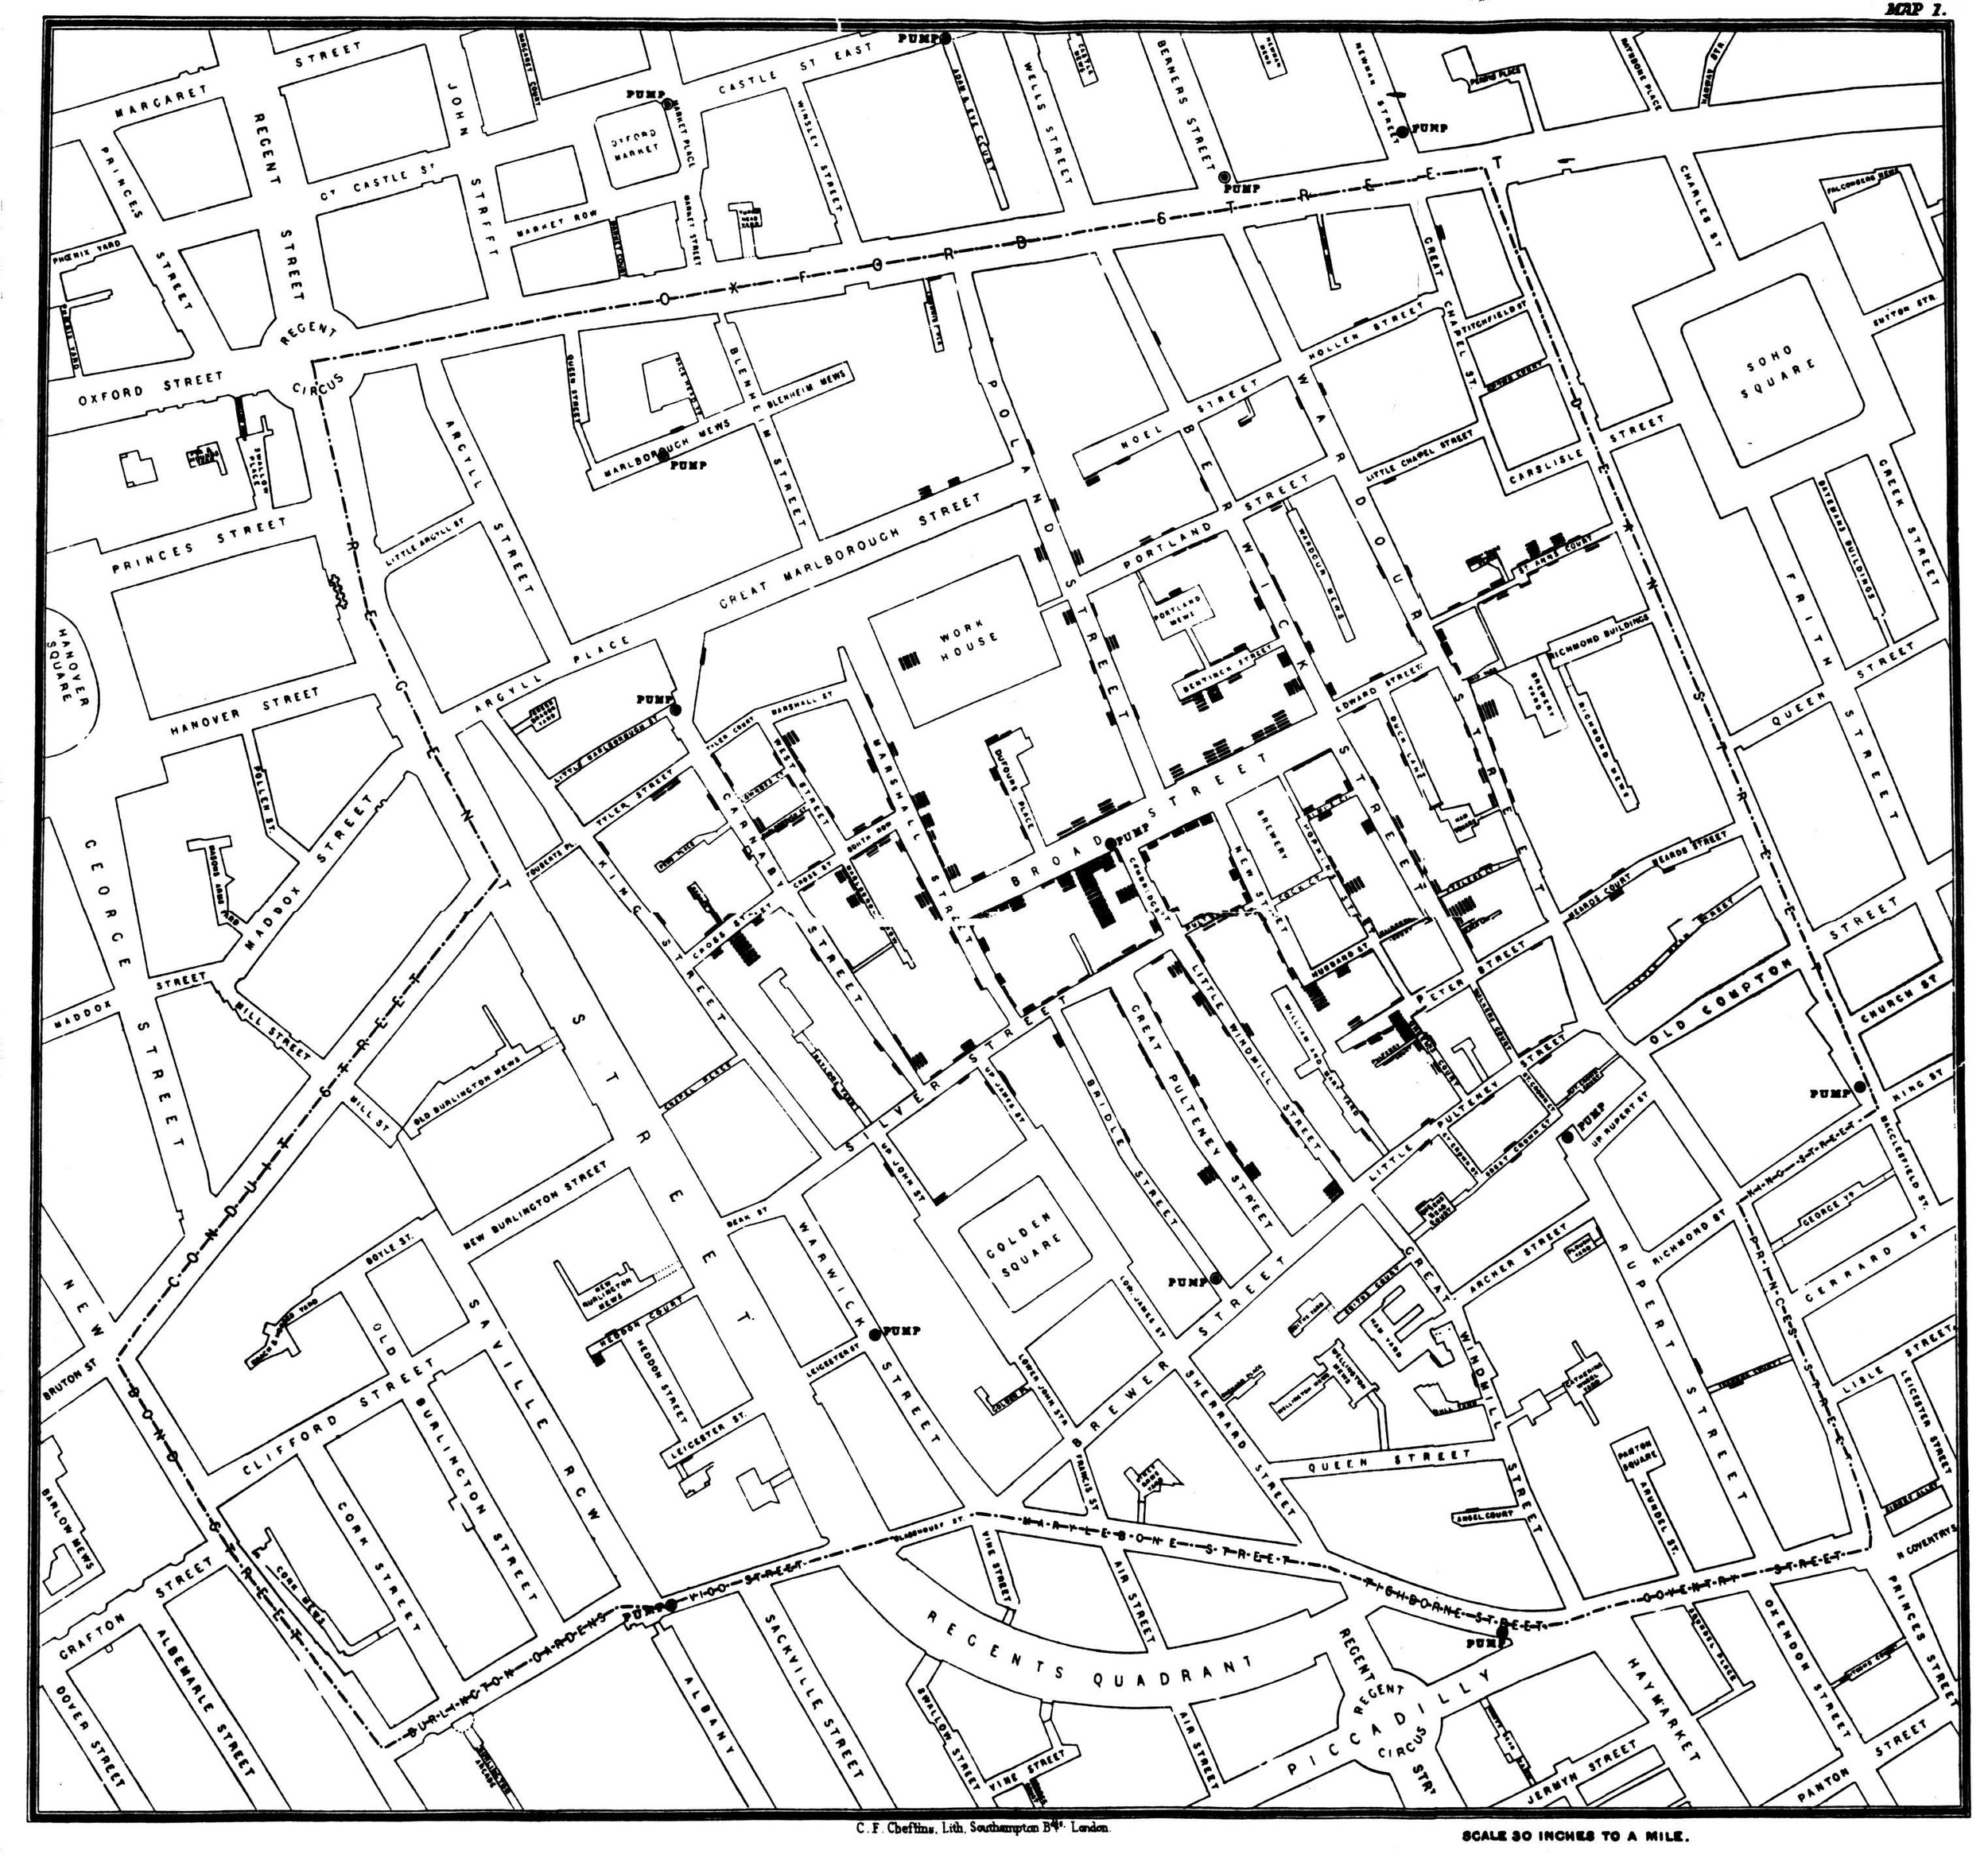 John Snow's Map of the Soho, London, Cholera Outbreak, first presented in December 1854. (click for larger view)